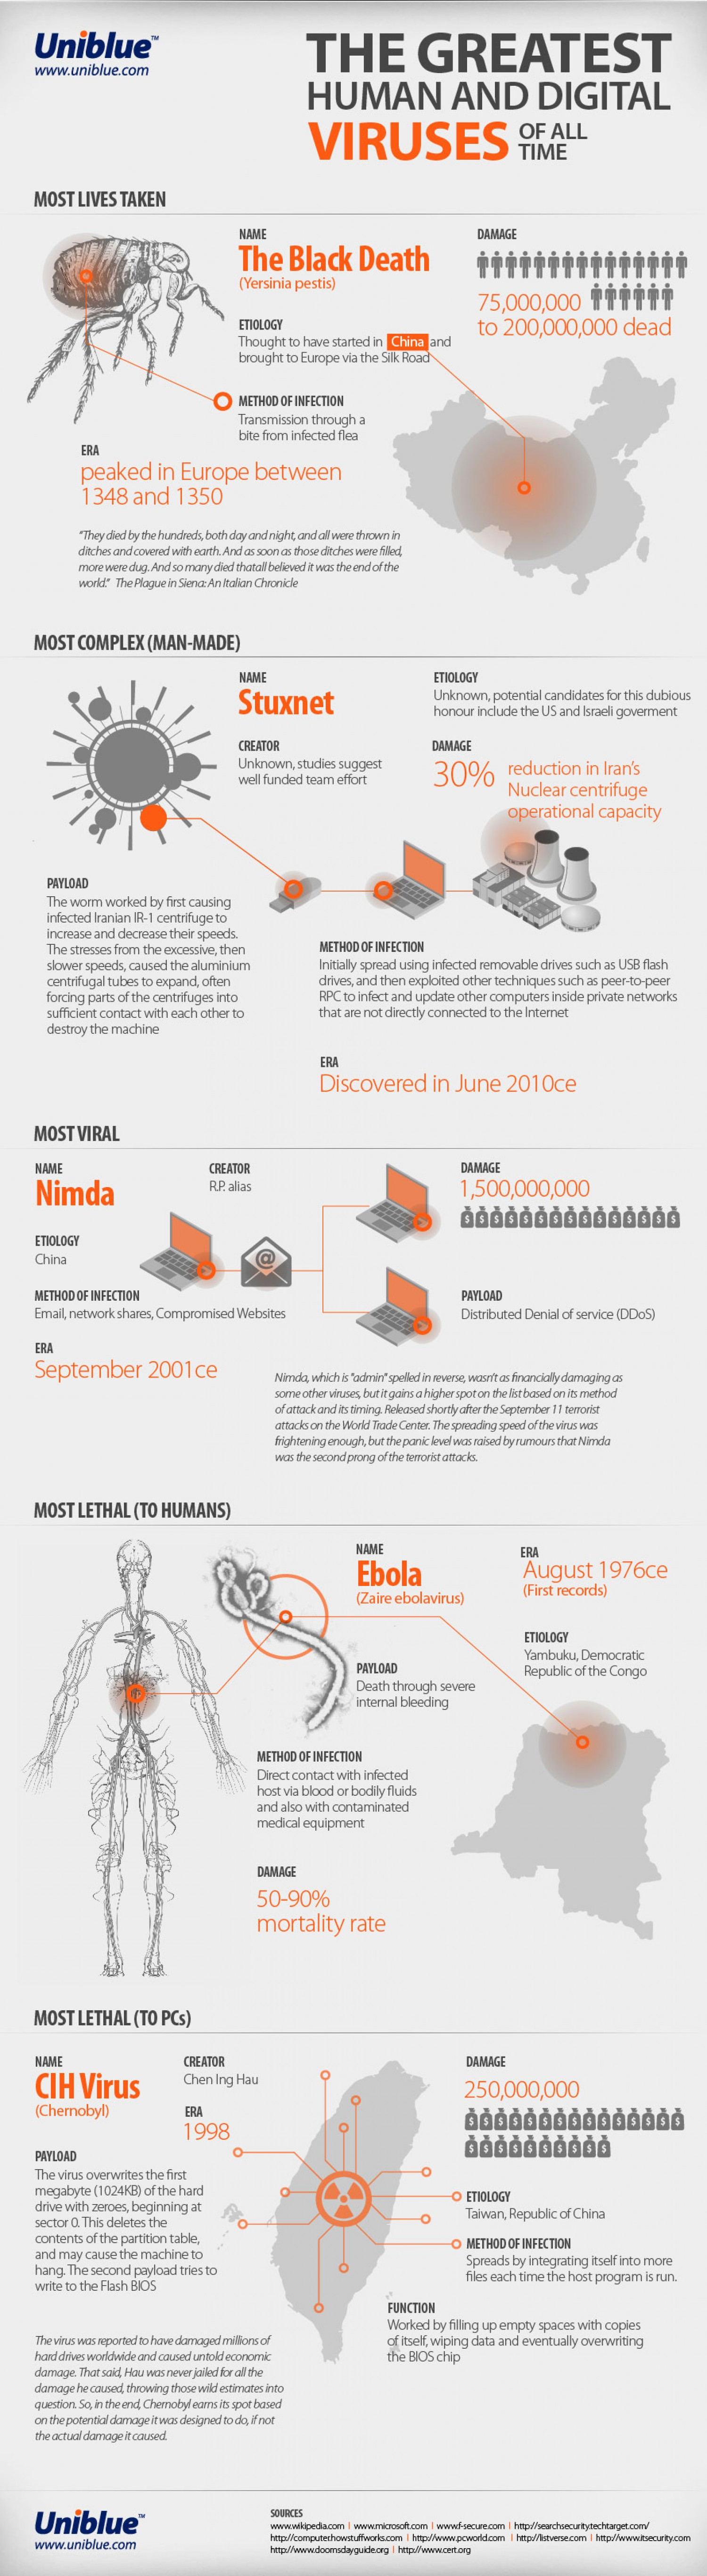 The Greatest Viruses of All Time